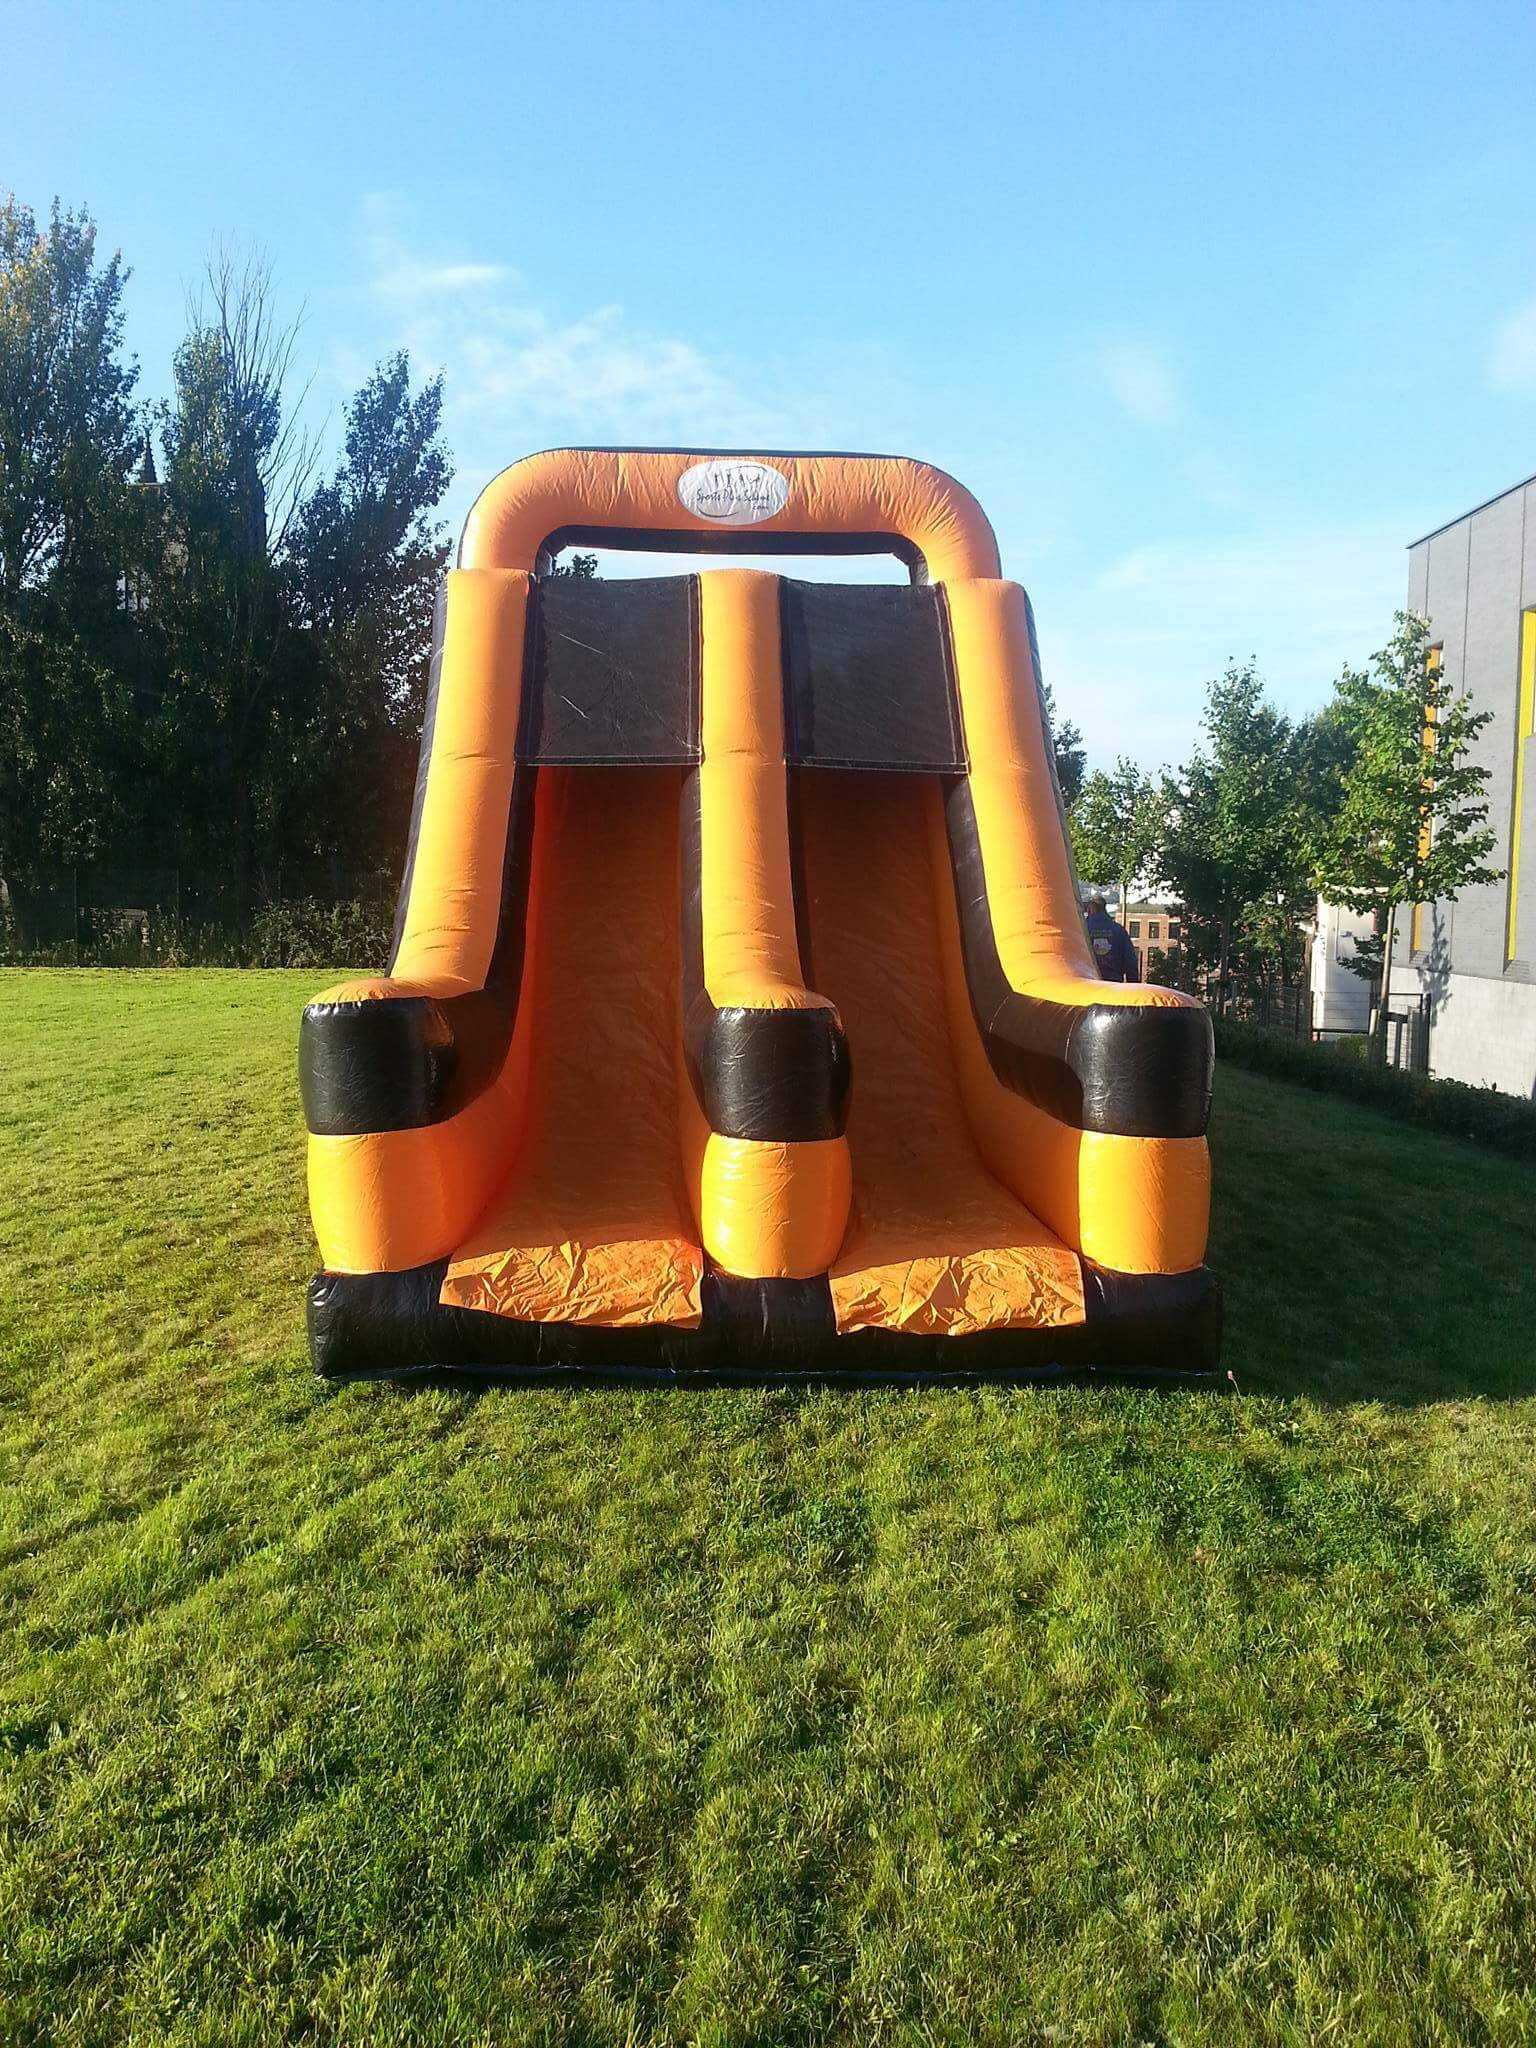 90ft Adults and kids assault course